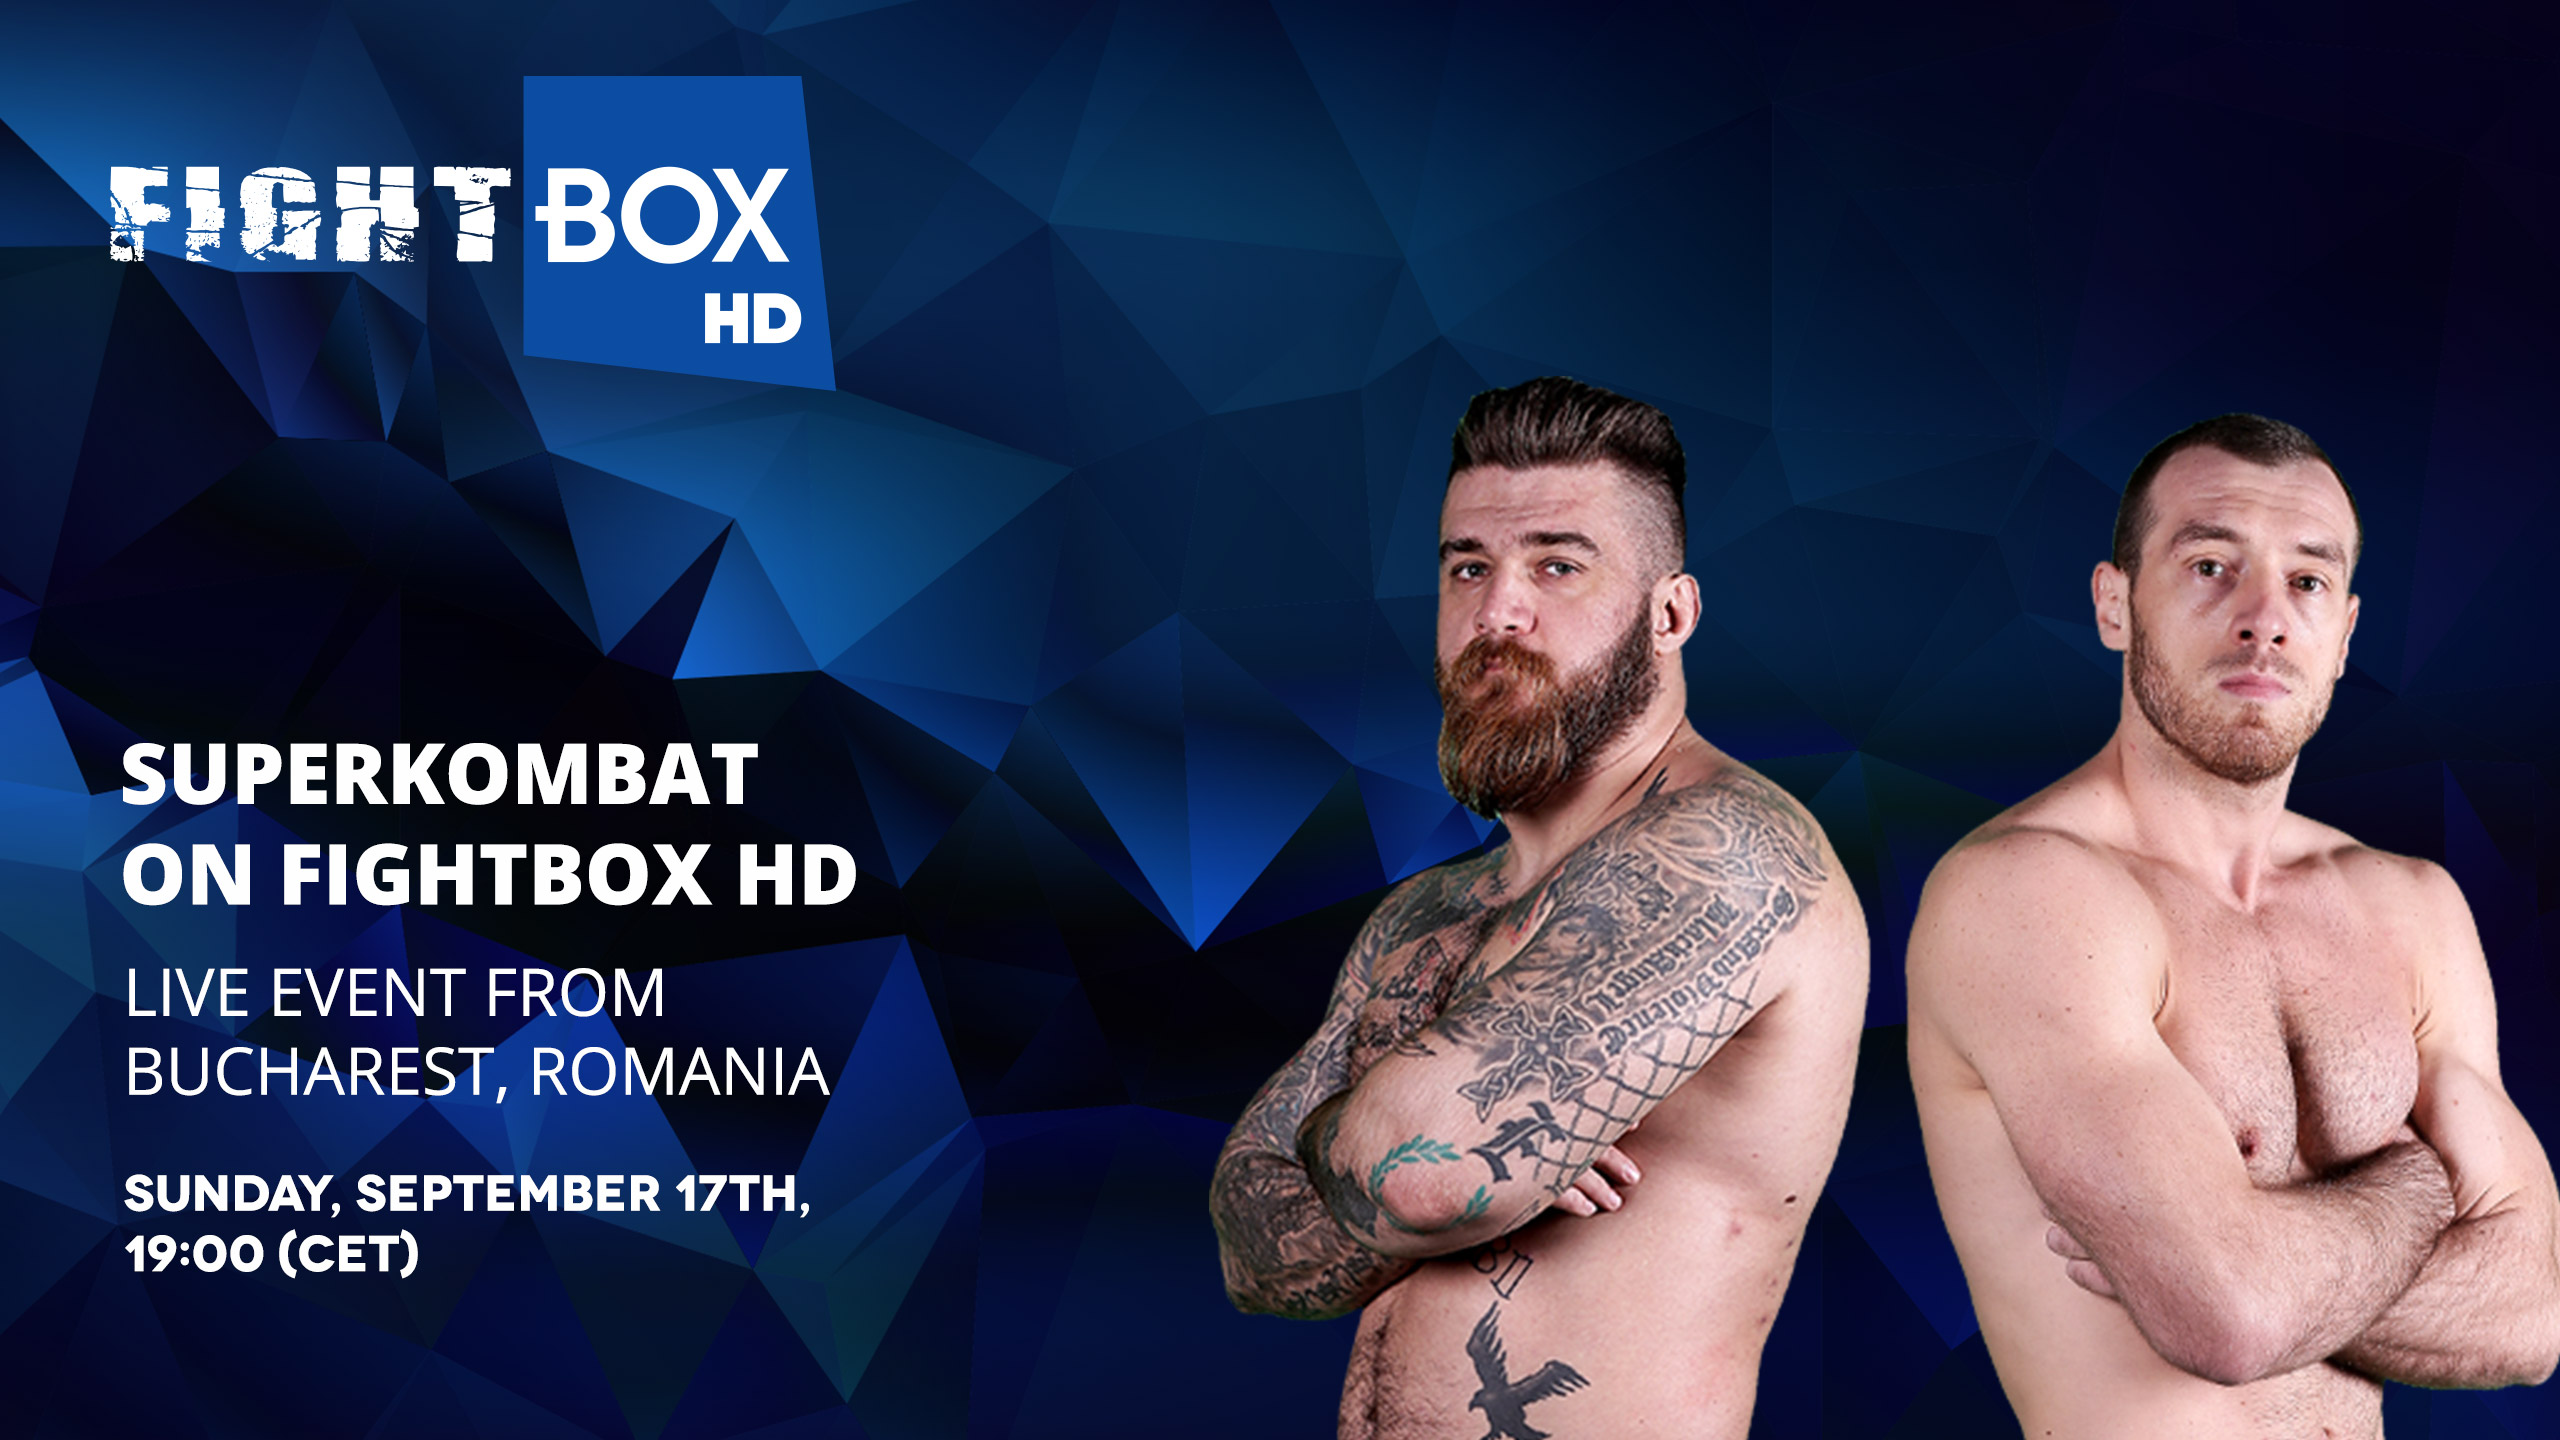 Superkombat Kickboxing WGP - LIVE on FightBox HD on Sunday September 17th at 7:00 pm CET